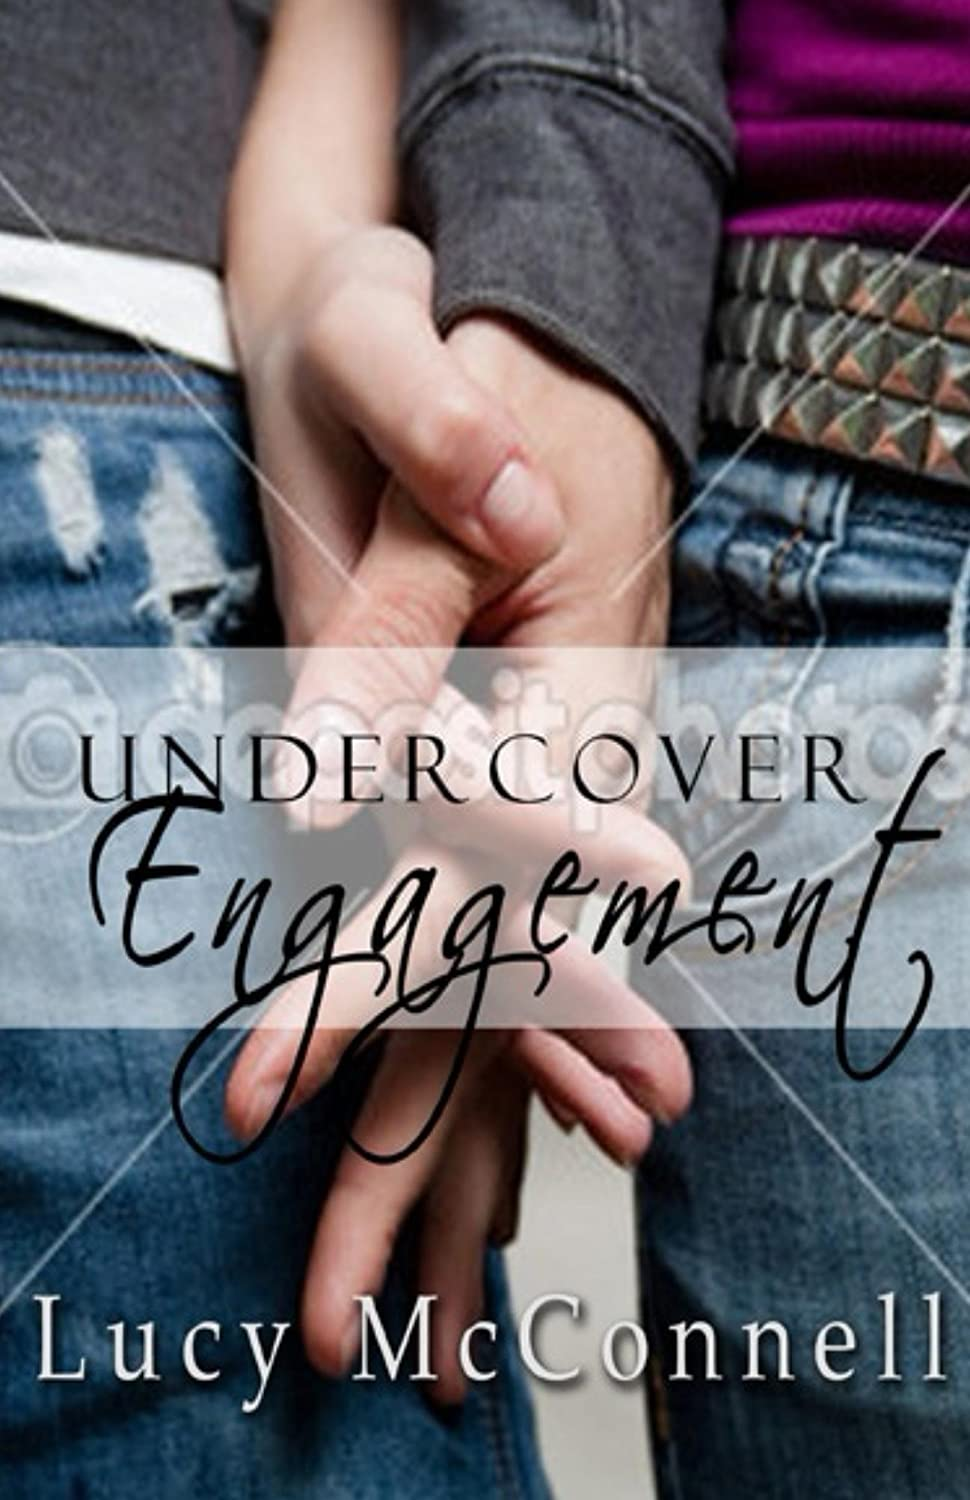 Undercover-Engagement-holding-hands-cover